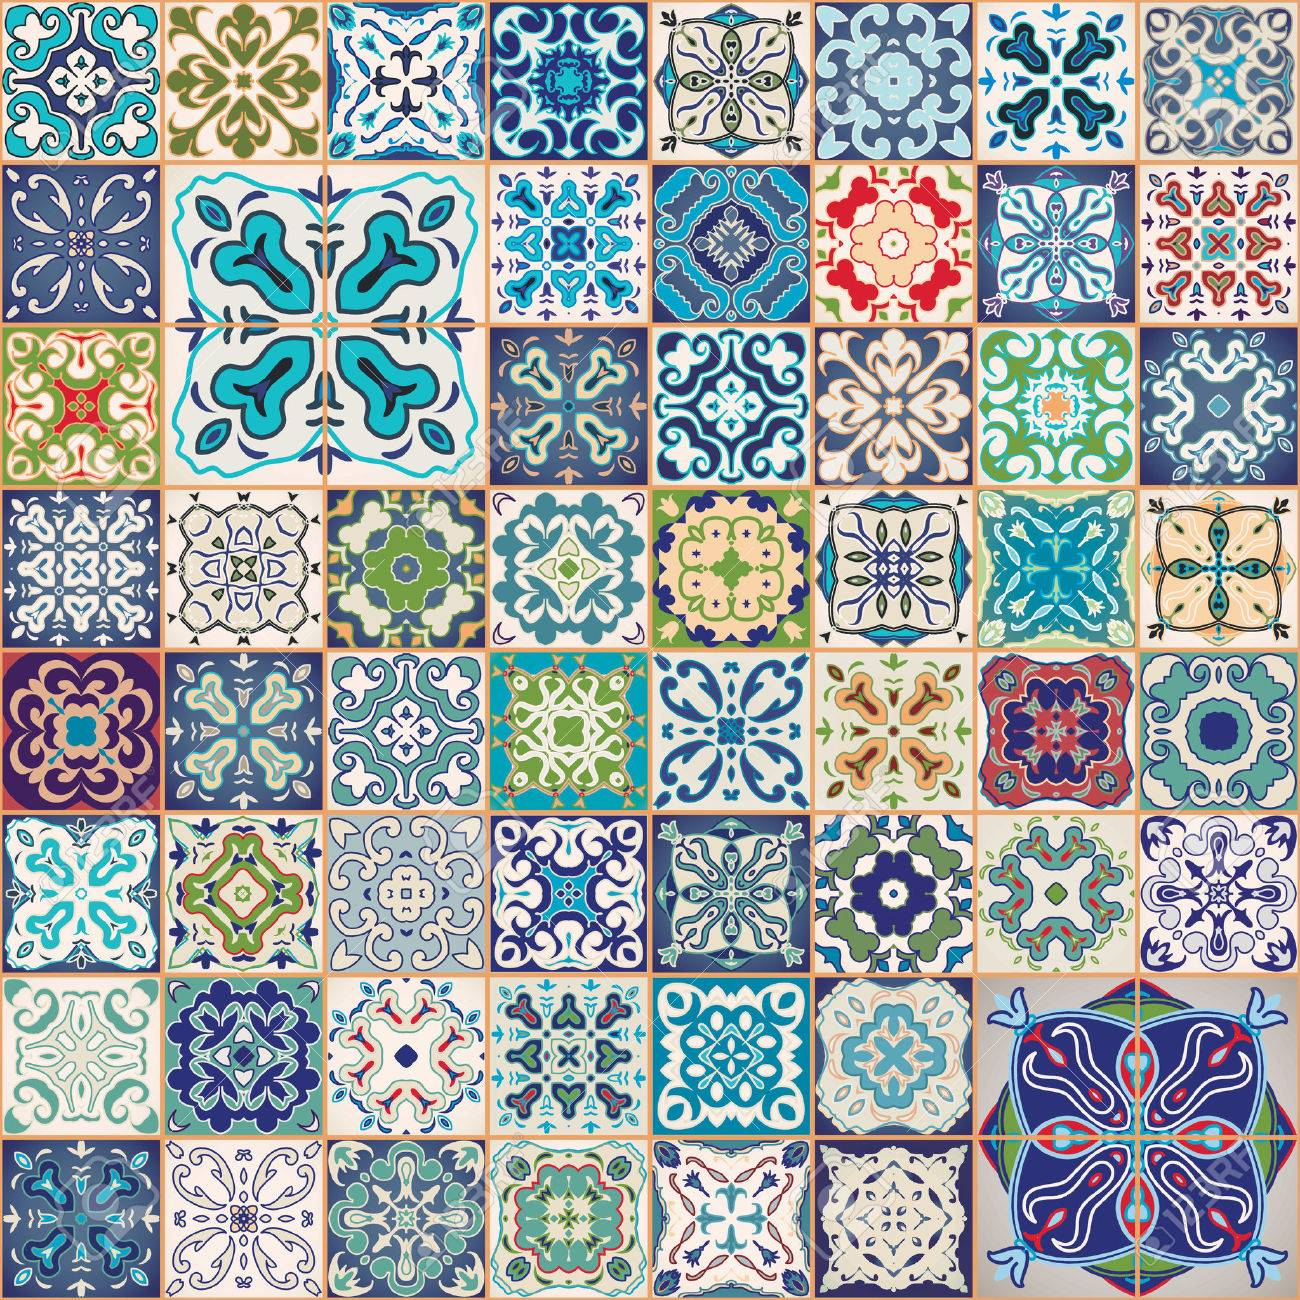 Gorgeous floral patchwork design. Colorful Moroccan or Mediterranean square tiles, tribal ornaments. For wallpaper print, pattern fills, web background, surface textures. Indigo blue white teal aqua. - 55091962